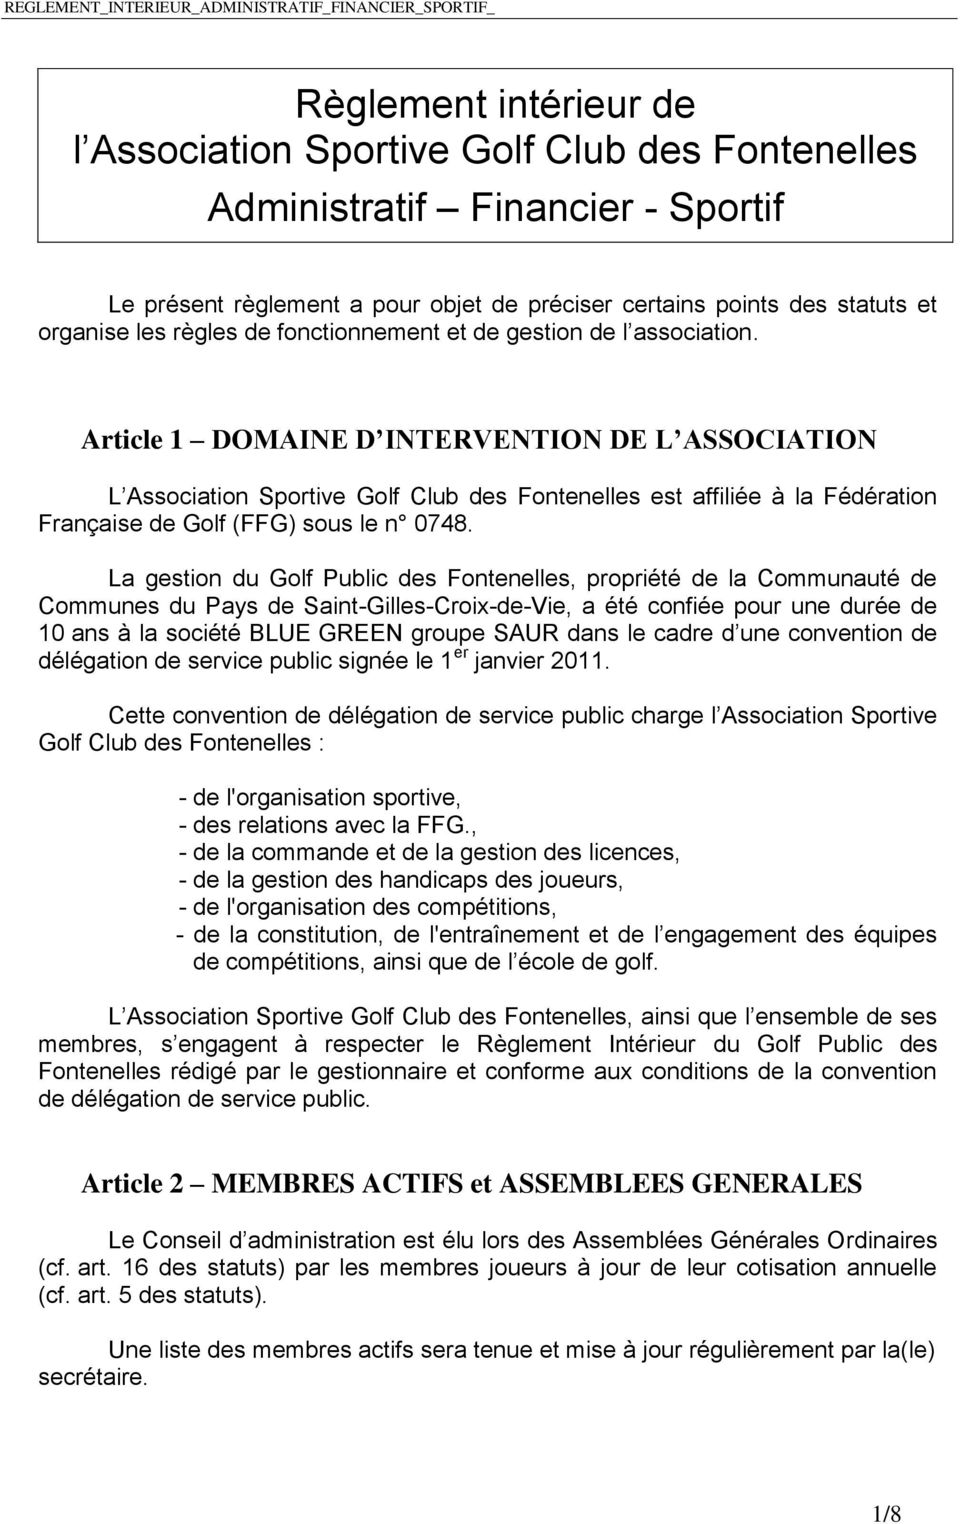 r 232 glement int 233 rieur de l association sportive golf club des fontenelles administratif financier